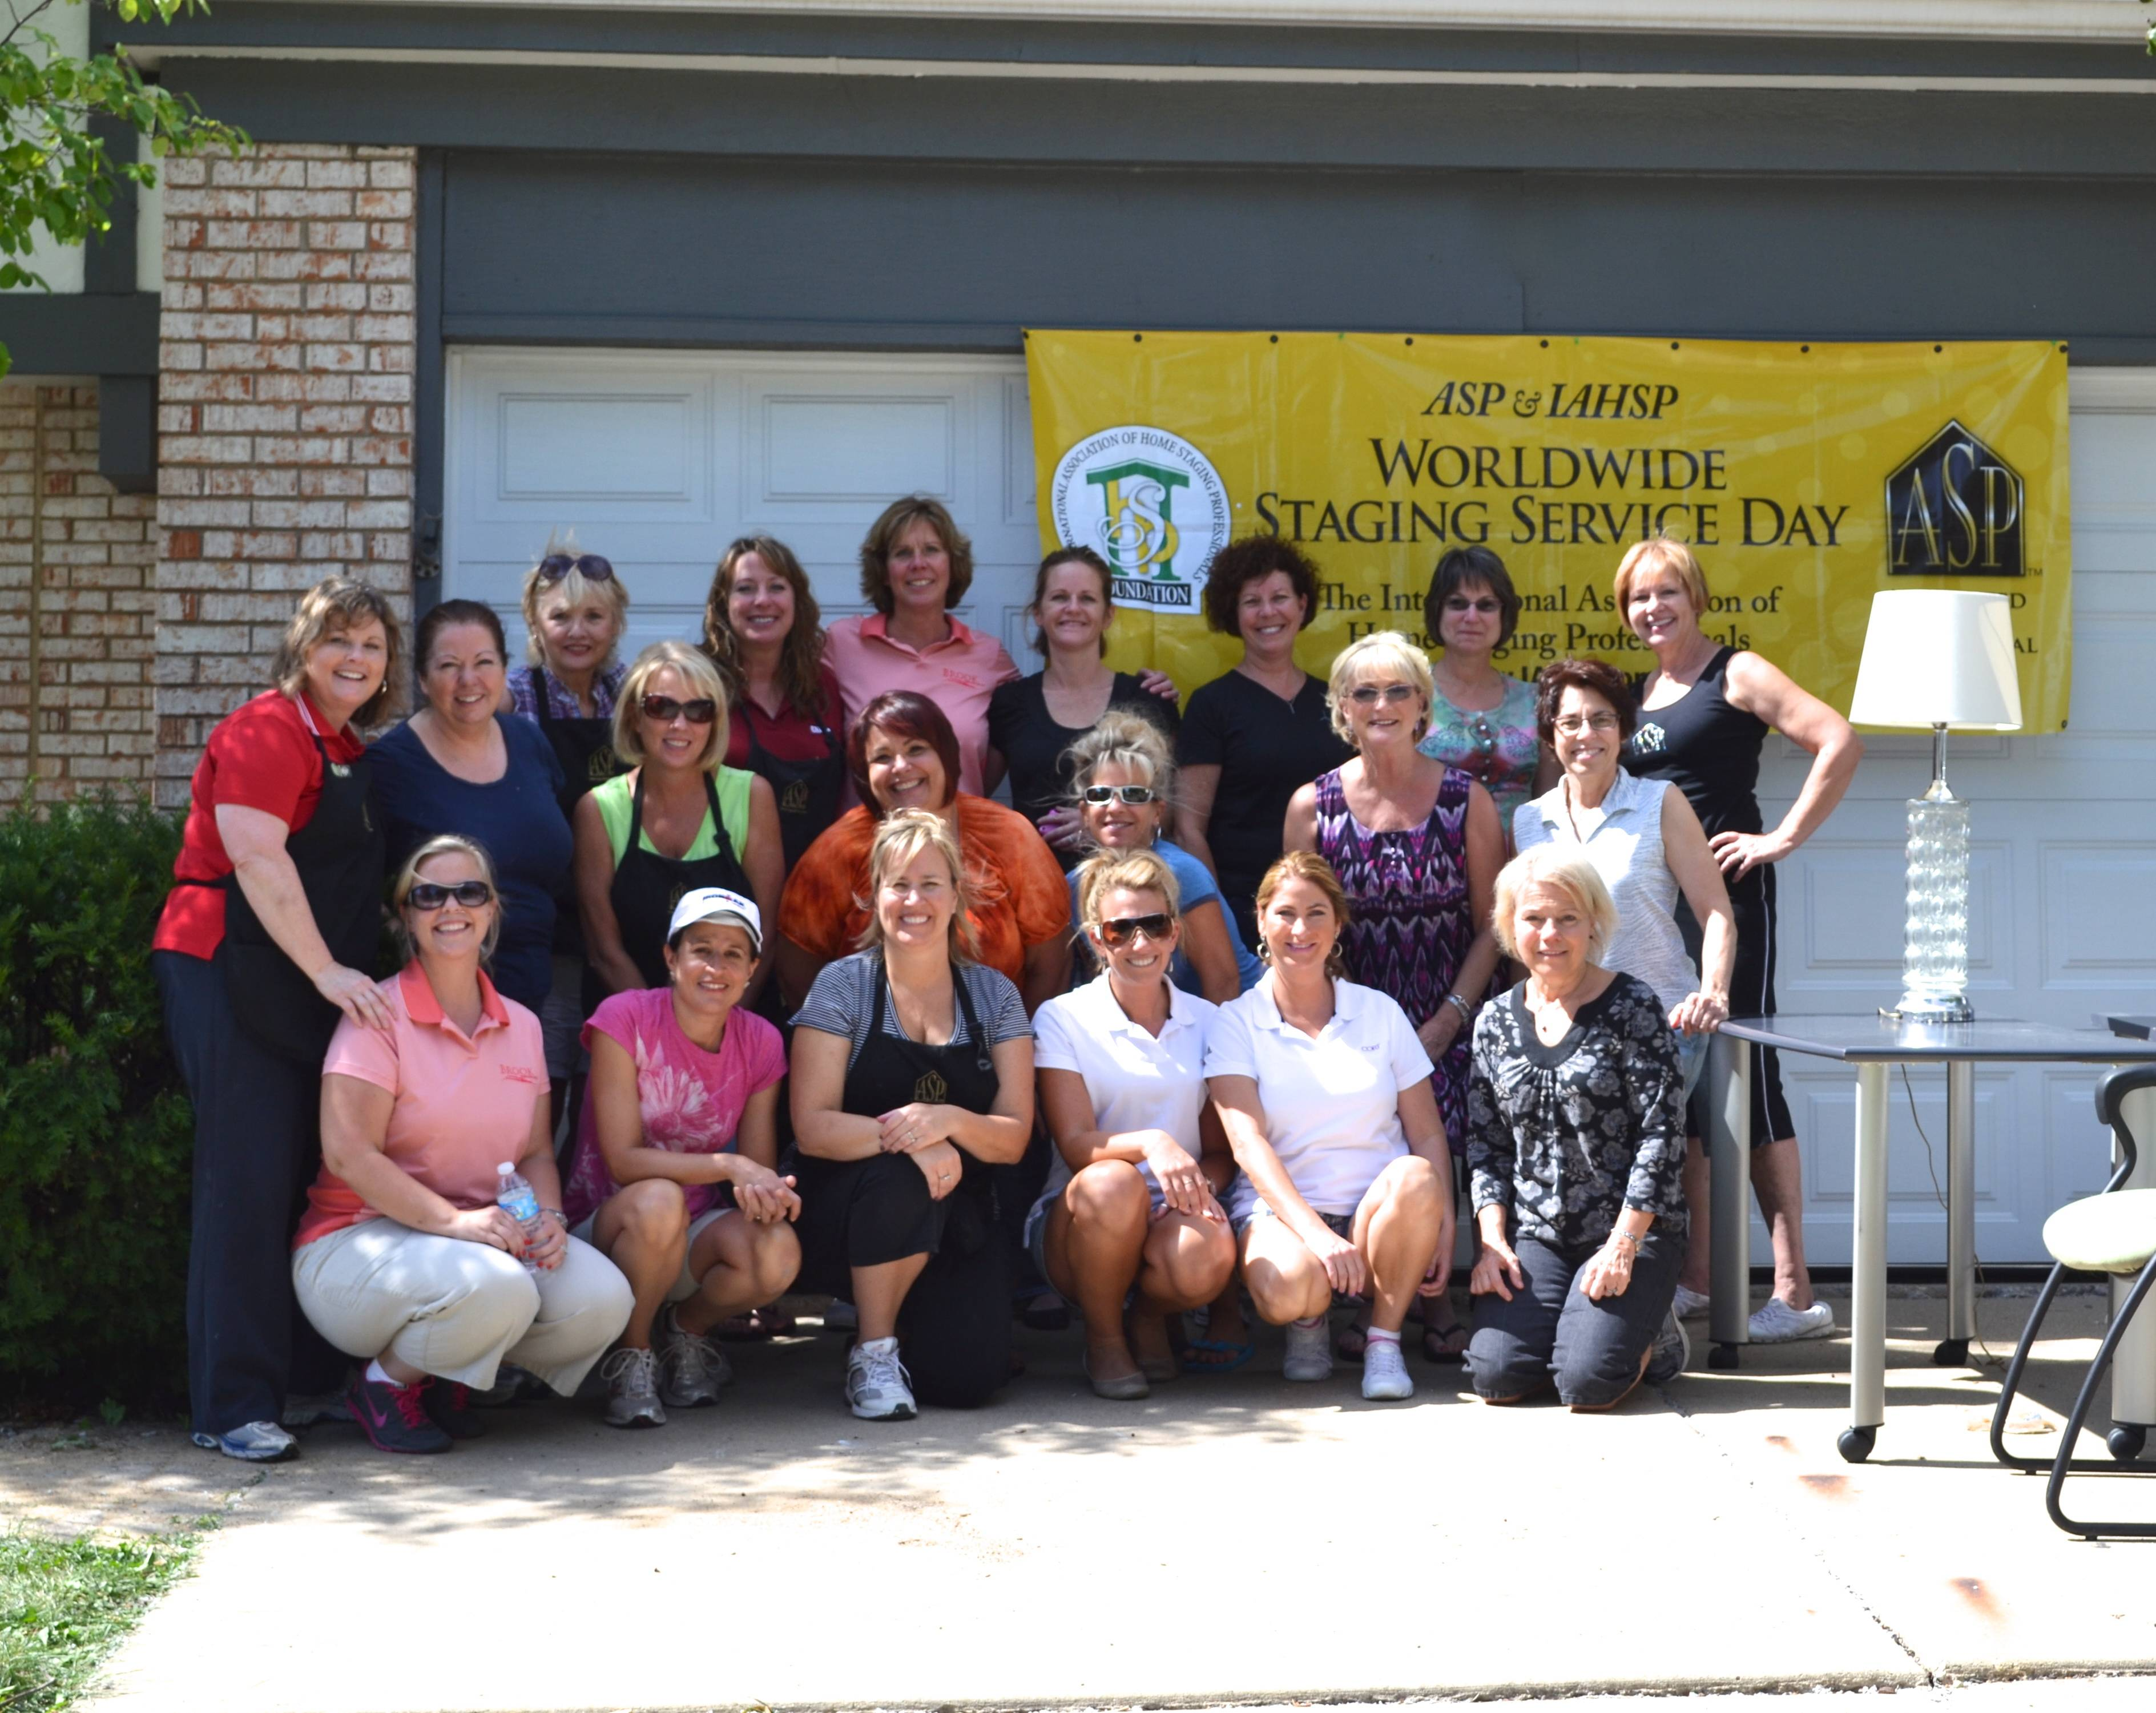 2012 World Wide Staging Service Project Volunteers on Sept. 12 in Schaumburg